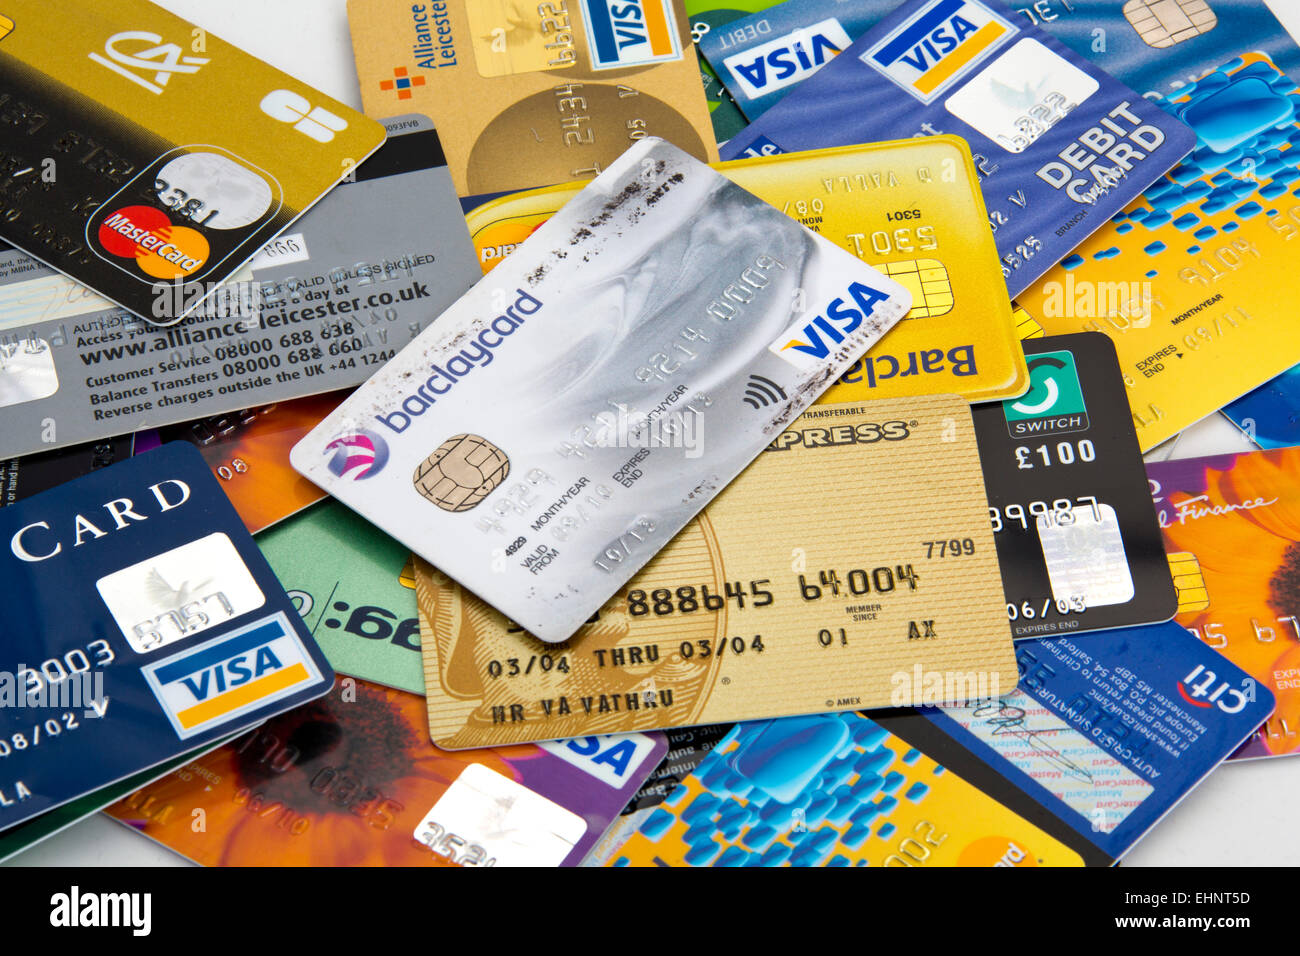 assortment of credit and debit cards visa and mastercard 151139_credit cards stock image - Visa Charge Card